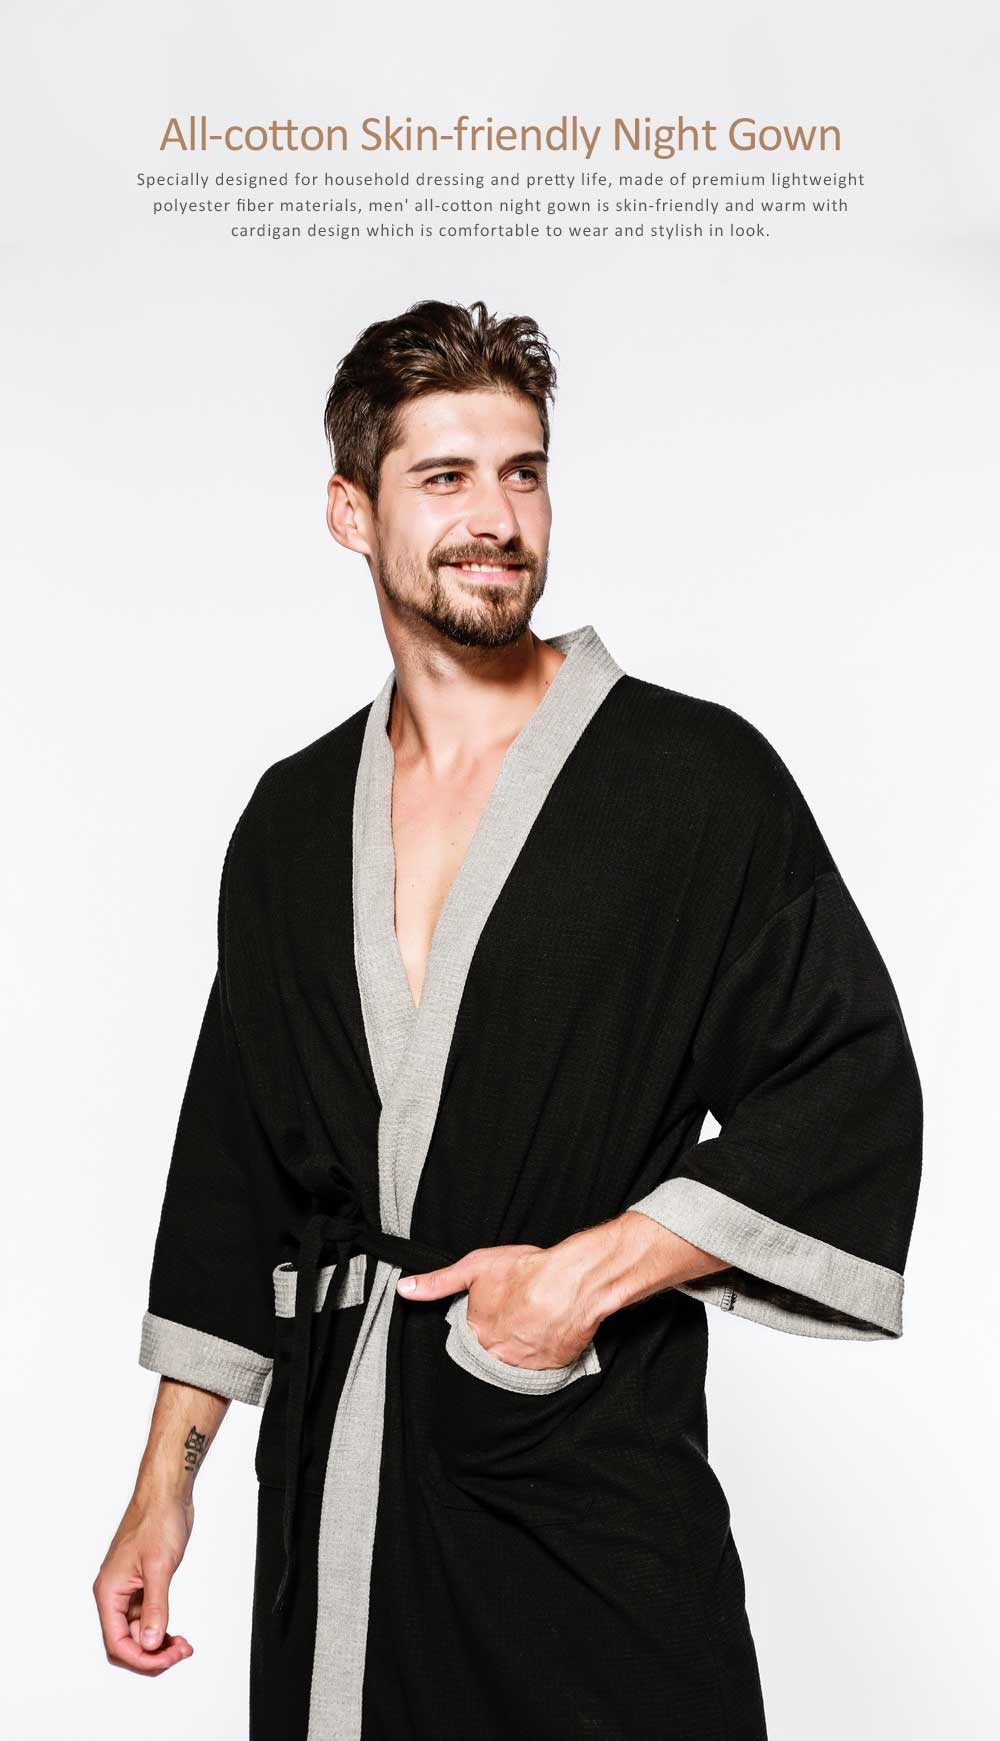 Men All-cotton Skin-friendly Night Gown, Bathrobe, Sweat Sauna Towel for Beauty Salon and Spa Hotel 0